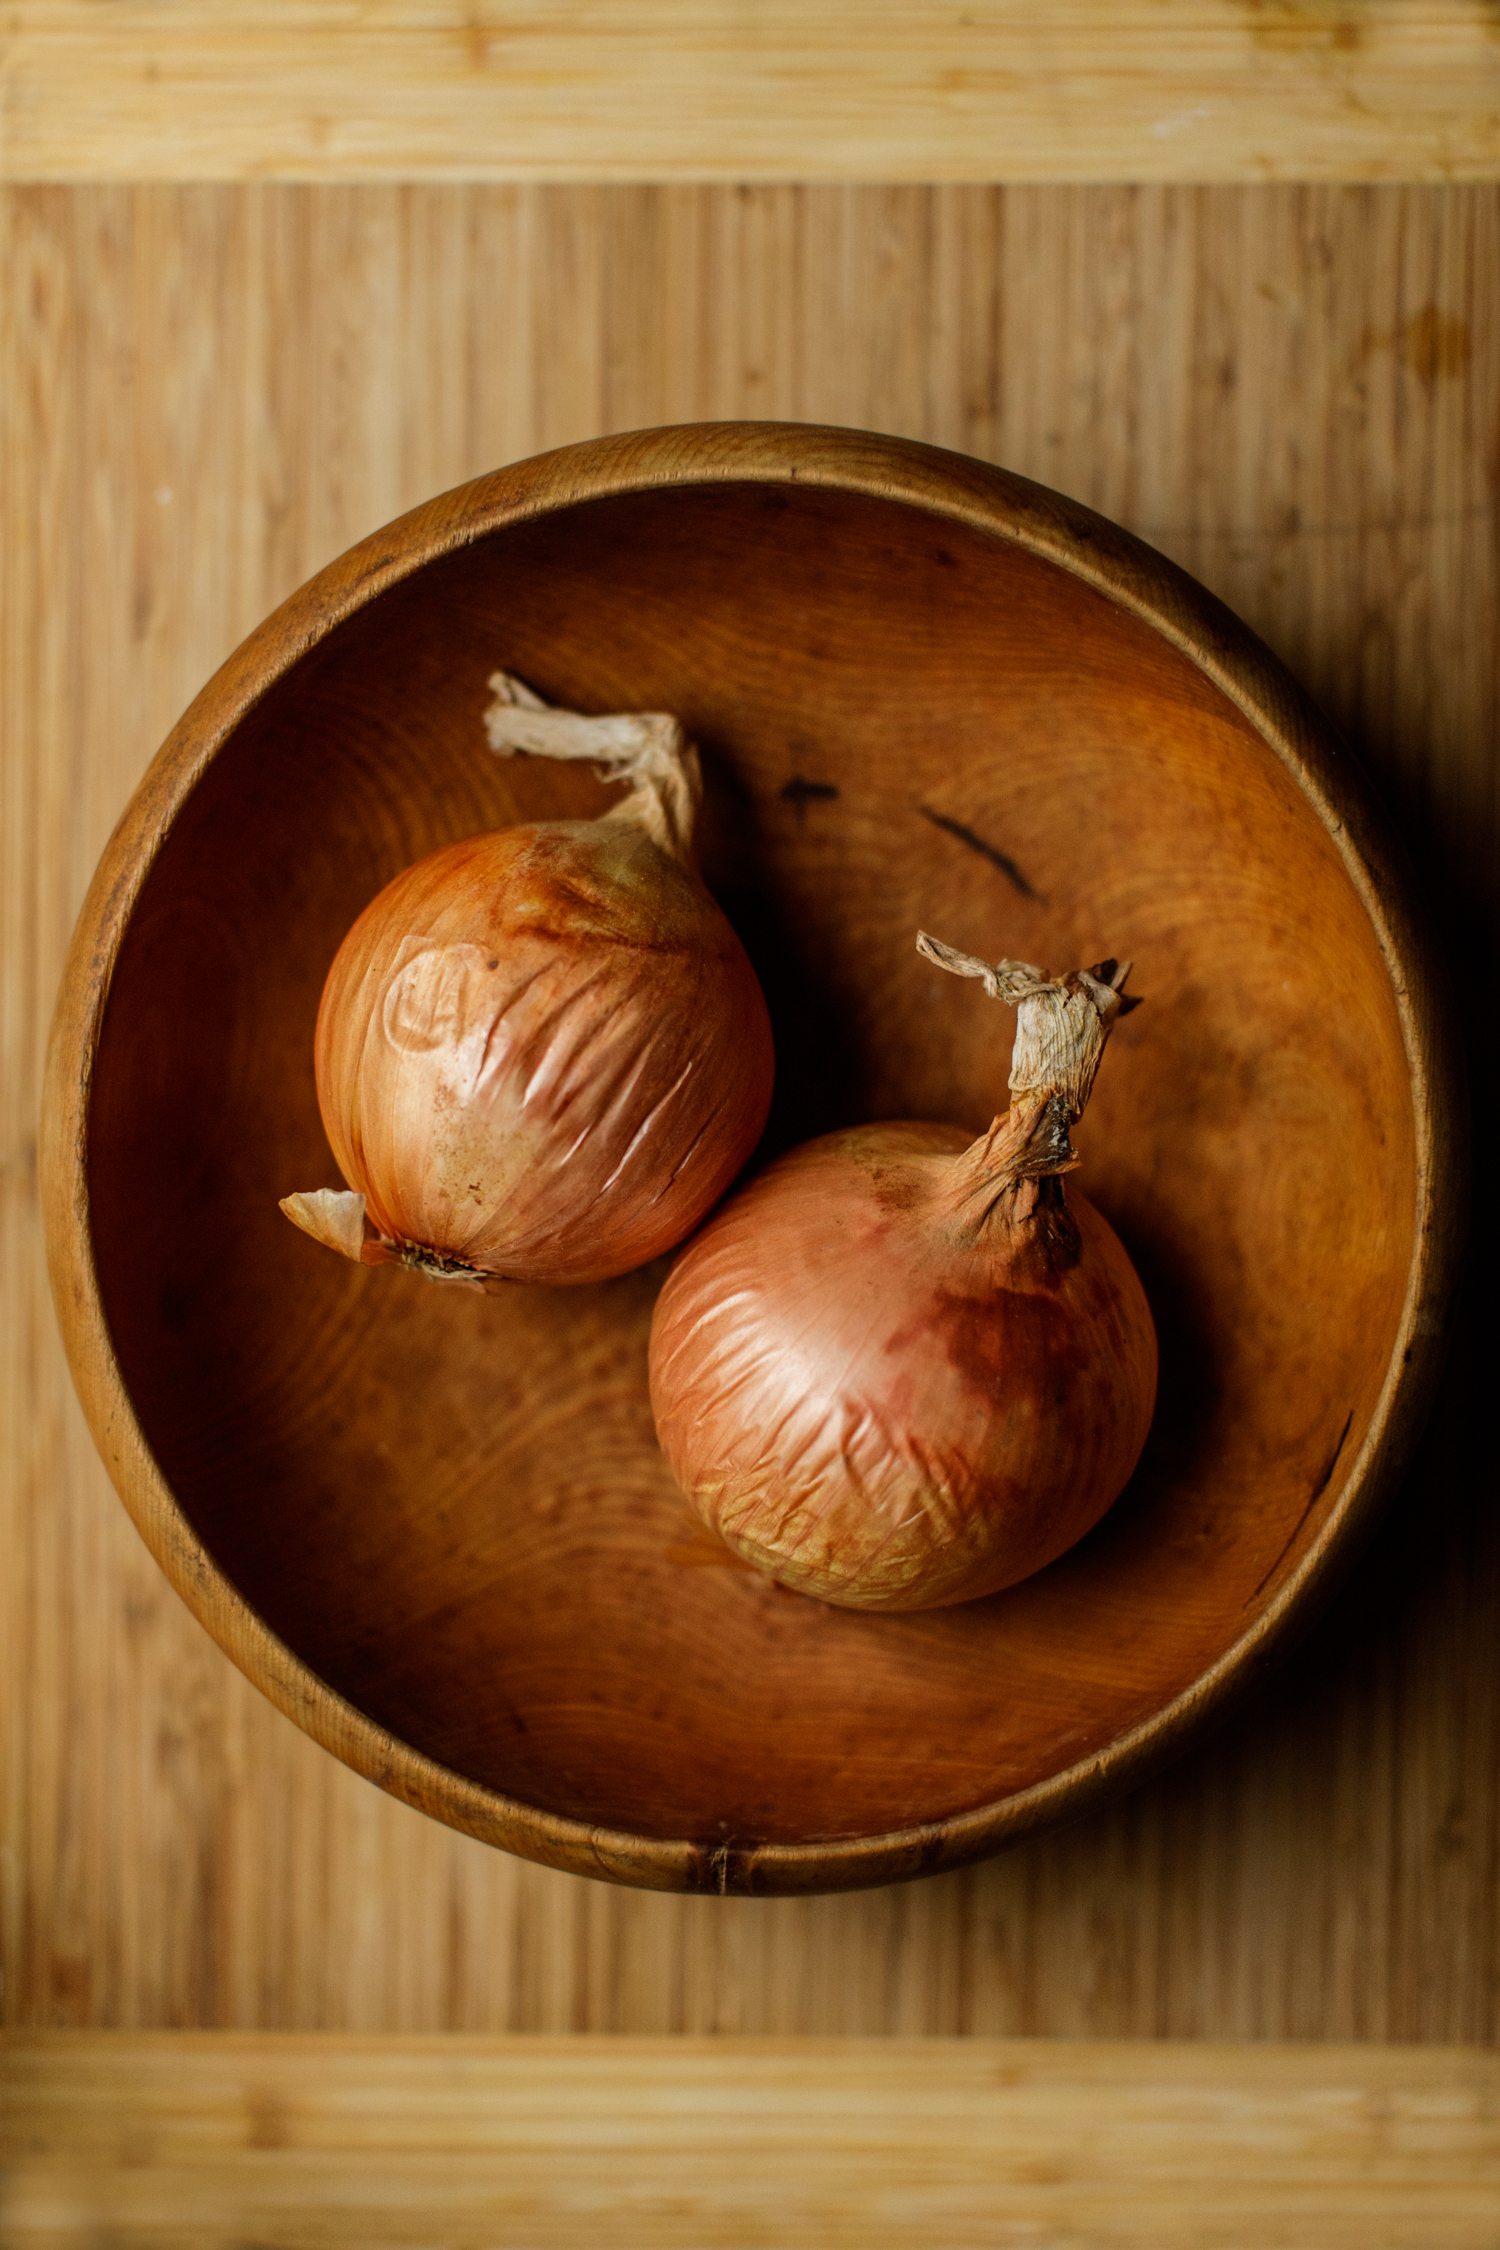 Two onions in a bowl